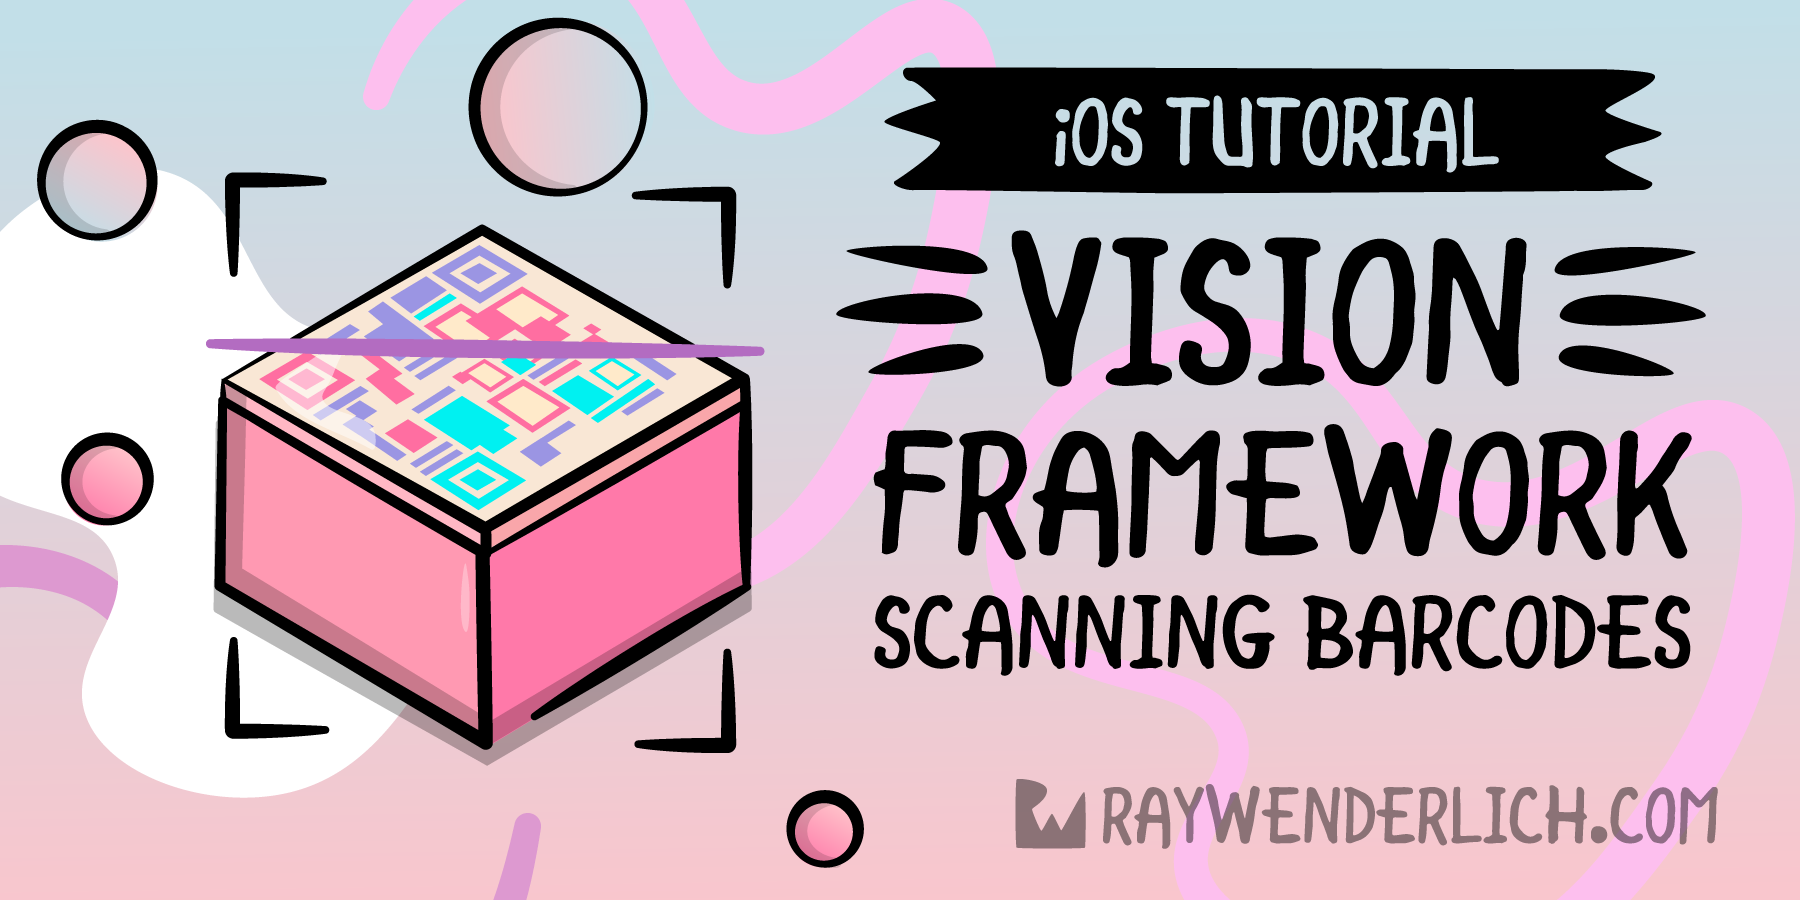 Vision Framework Tutorial for iOS: Scanning Barcodes [FREE]